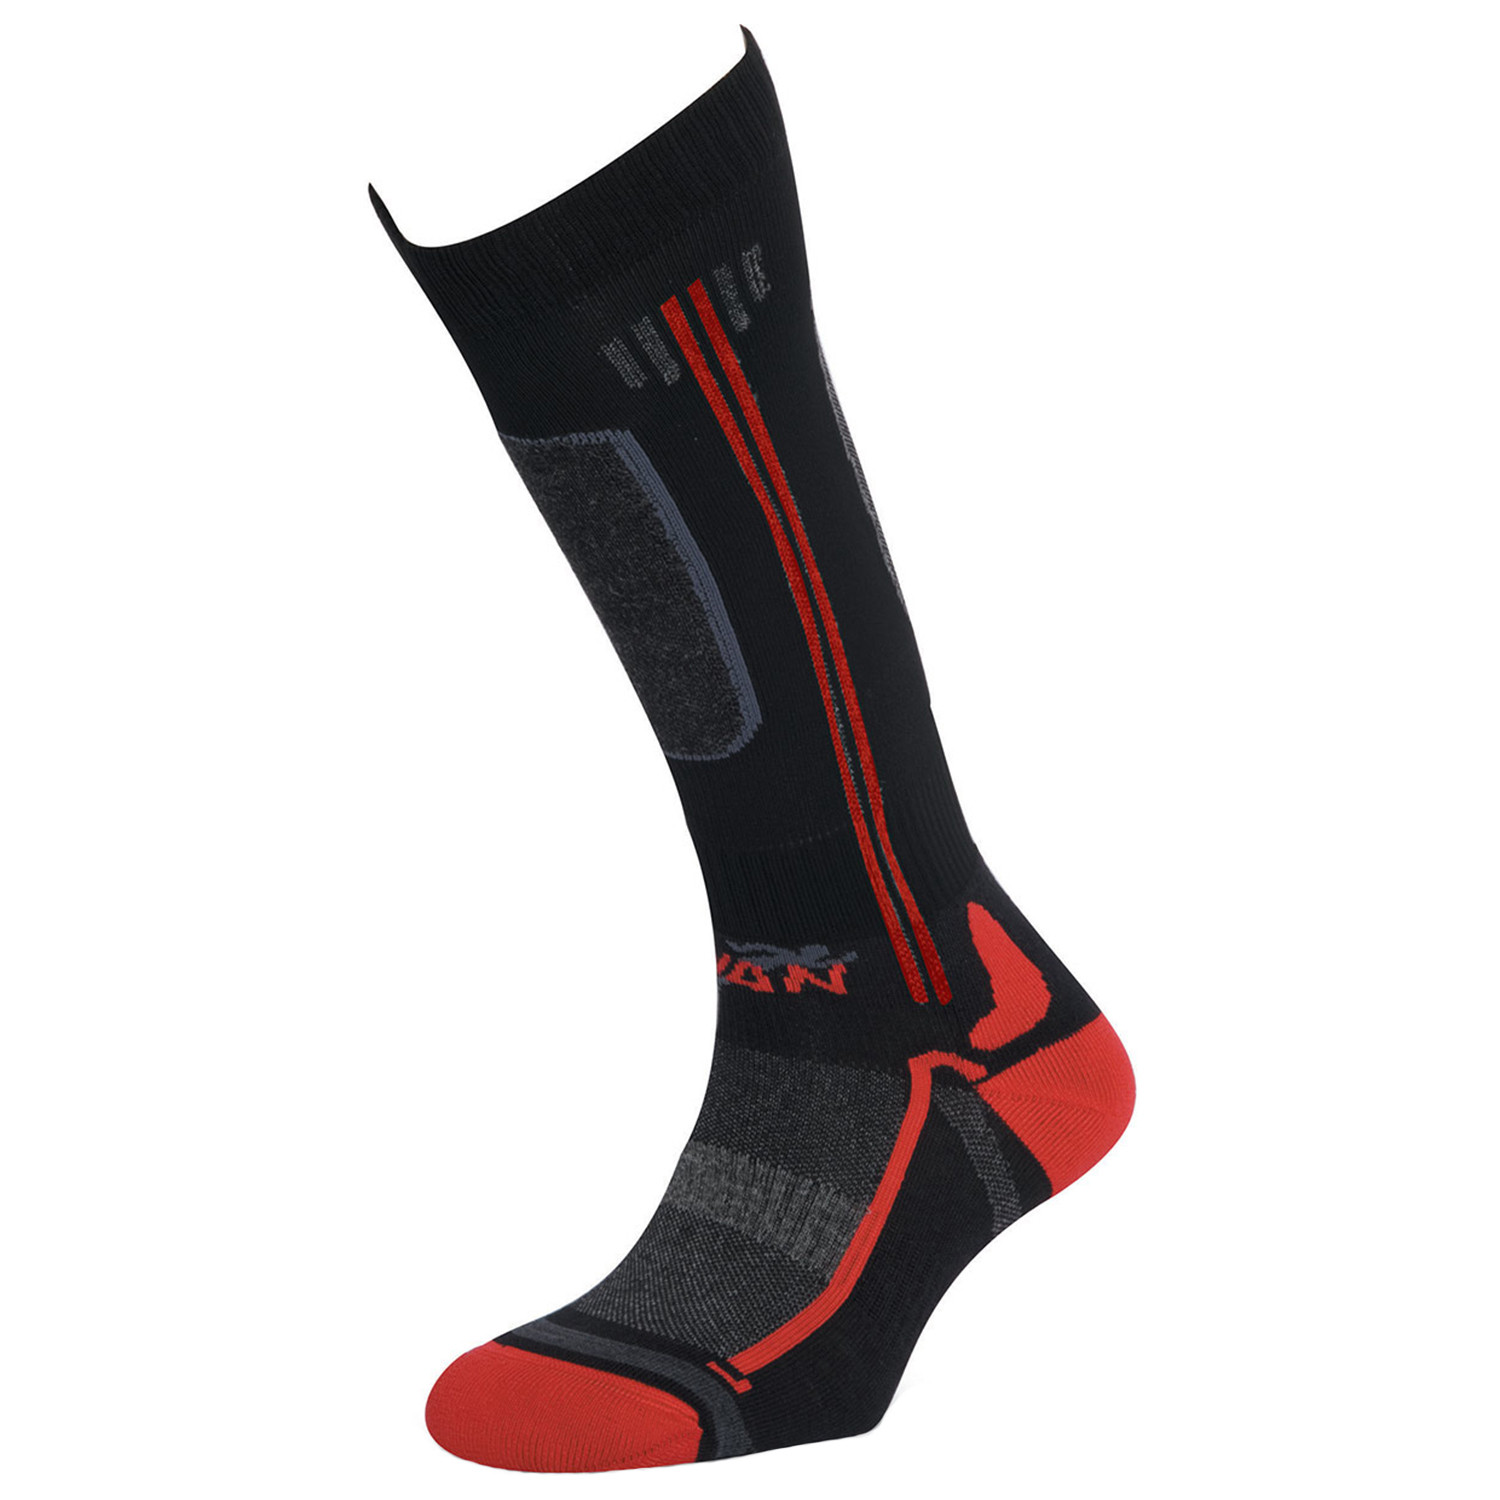 chaussette ski pas cher 2 paires chaussettes homme iguana ski snowboard. Black Bedroom Furniture Sets. Home Design Ideas